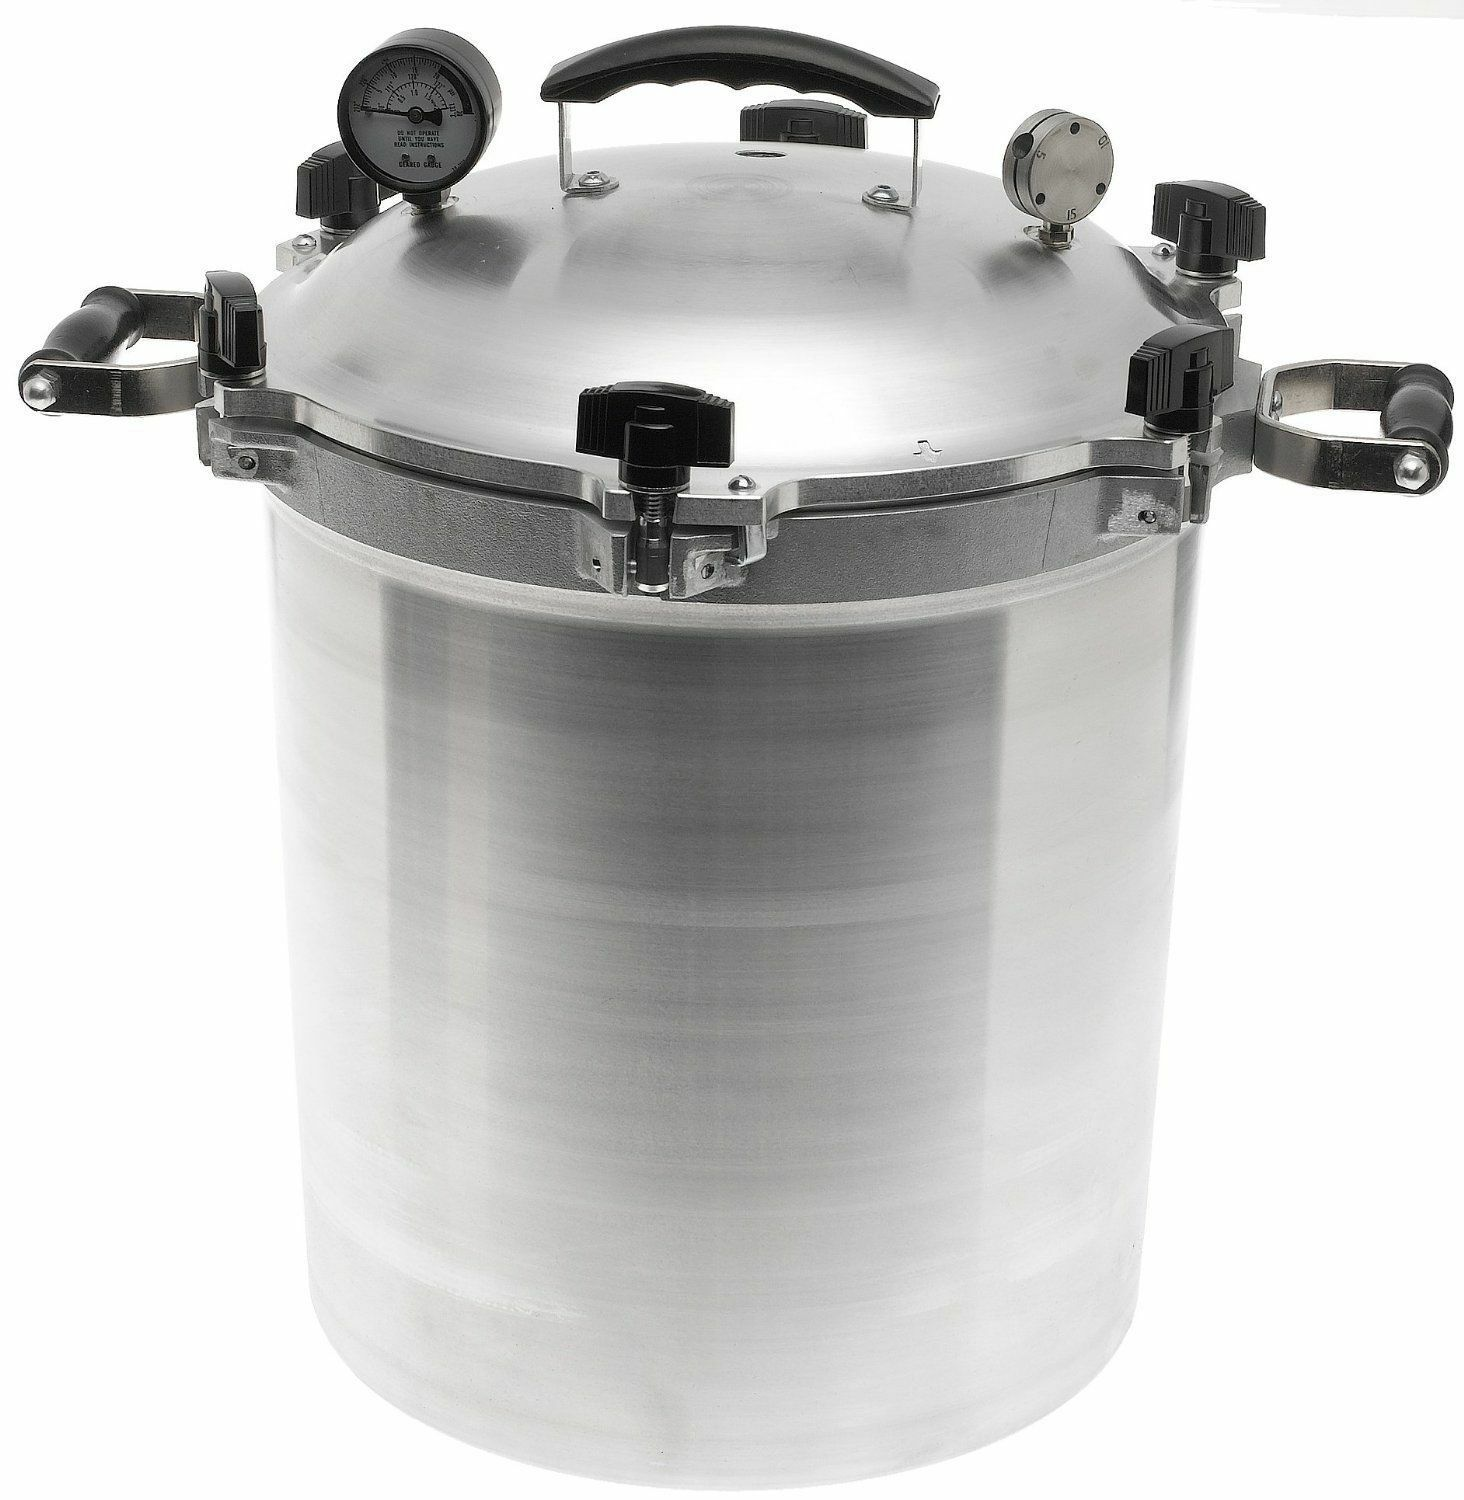 All American 30 Quart 930 Pressure Cooker Canner